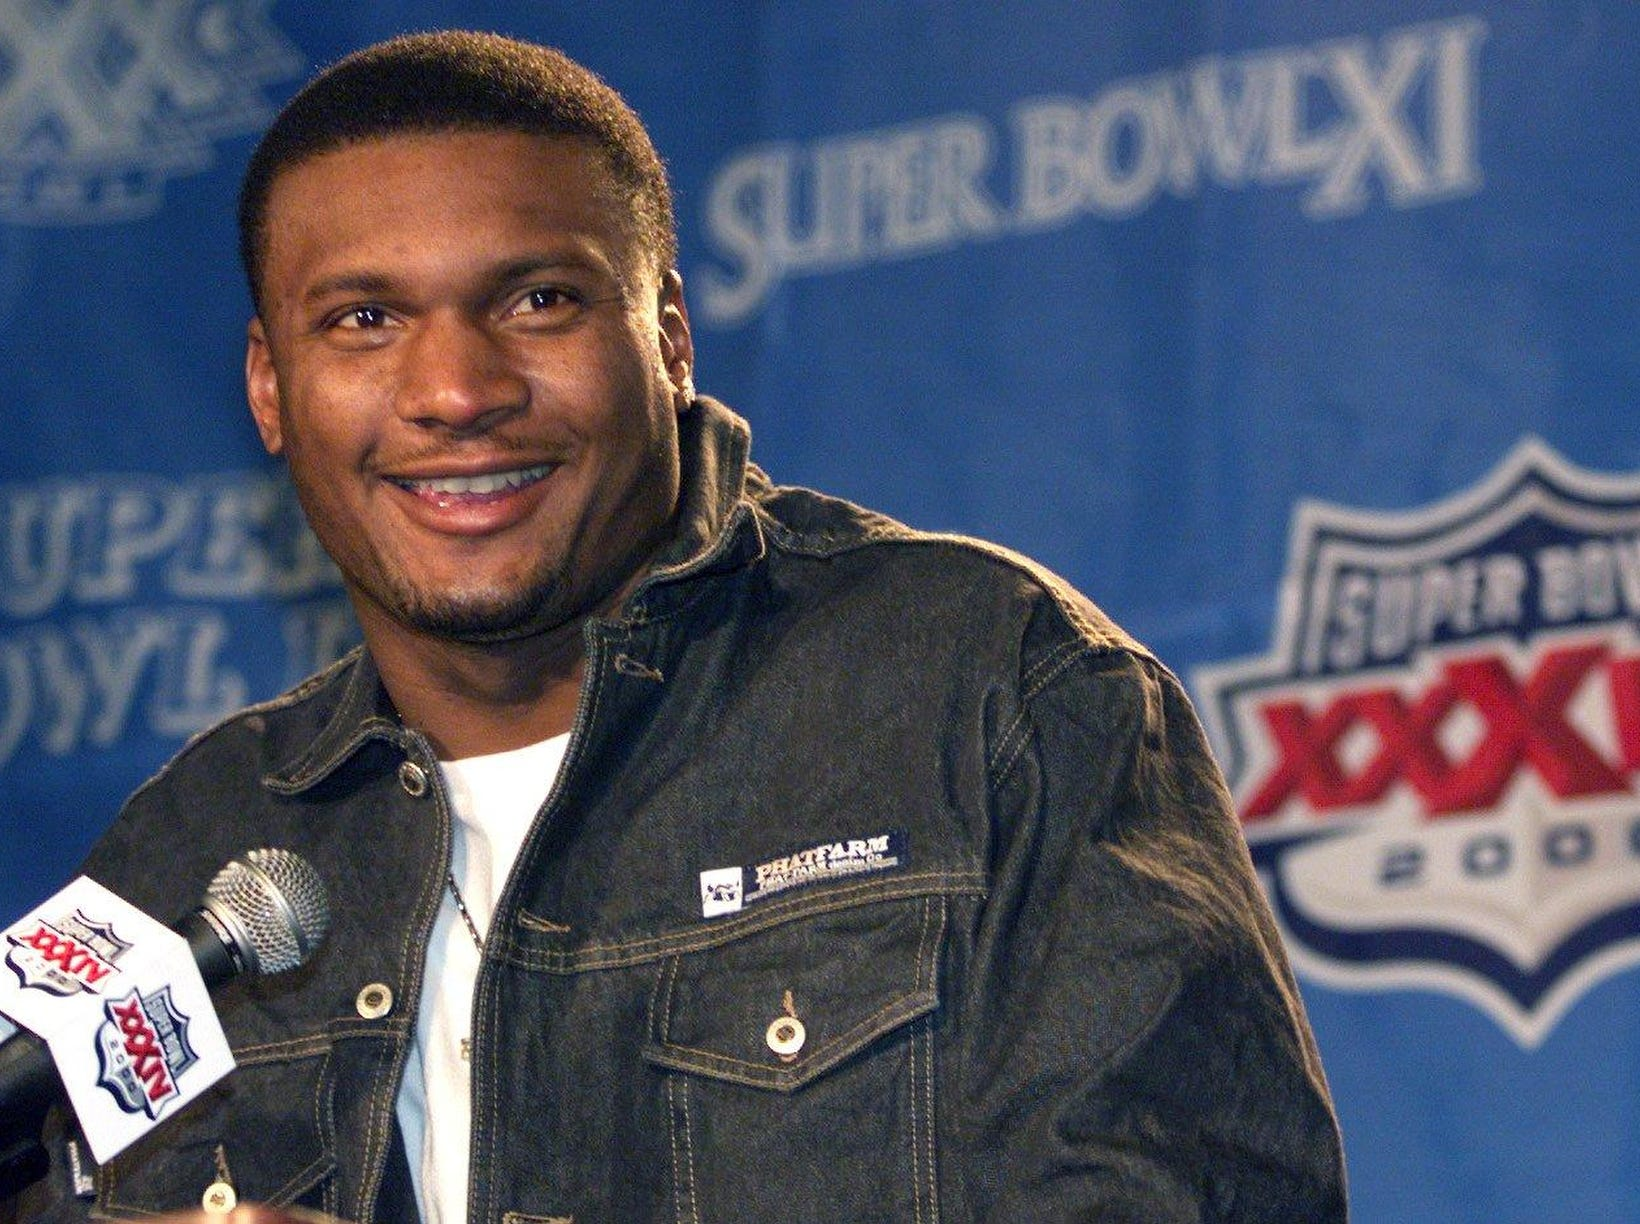 Tennessee Titans quarterback Steve McNair smiles as he answers questions from journalists during a press conference outside their hotel in a tent Jan. 26, 2000. Temperature was in the 20's during the press conference in Atlanta for Super Bowl XXXIV.